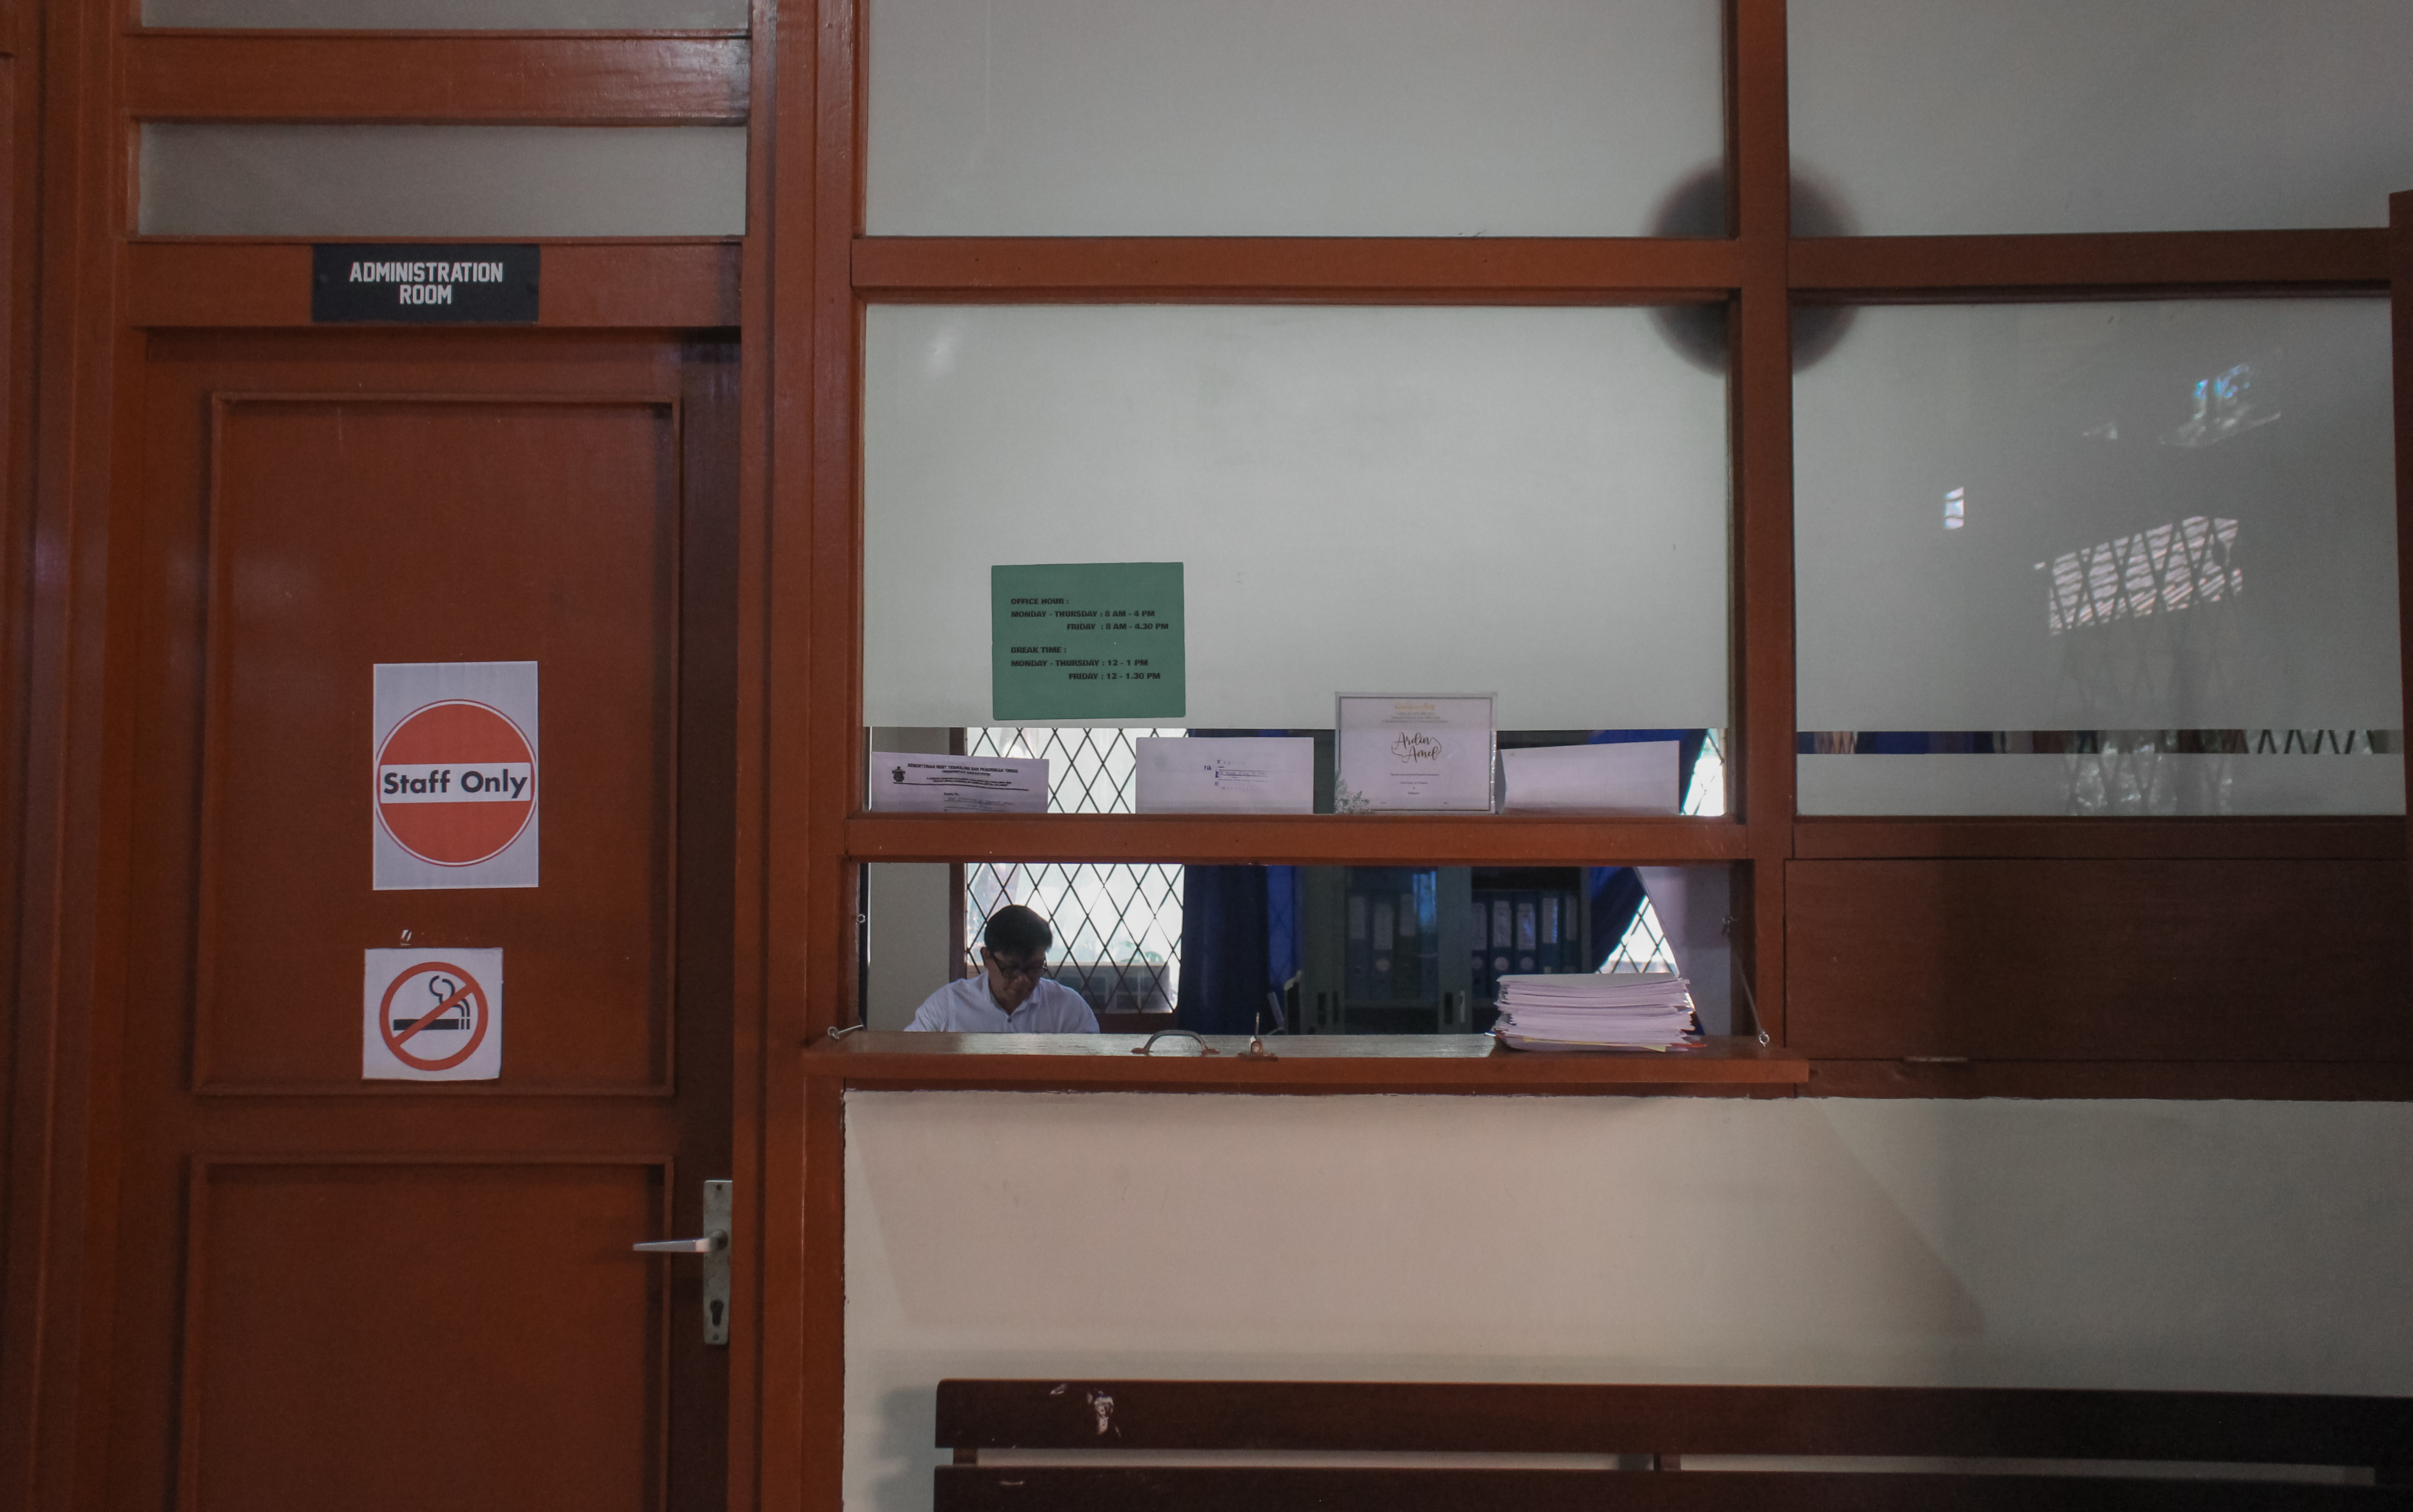 Administration room